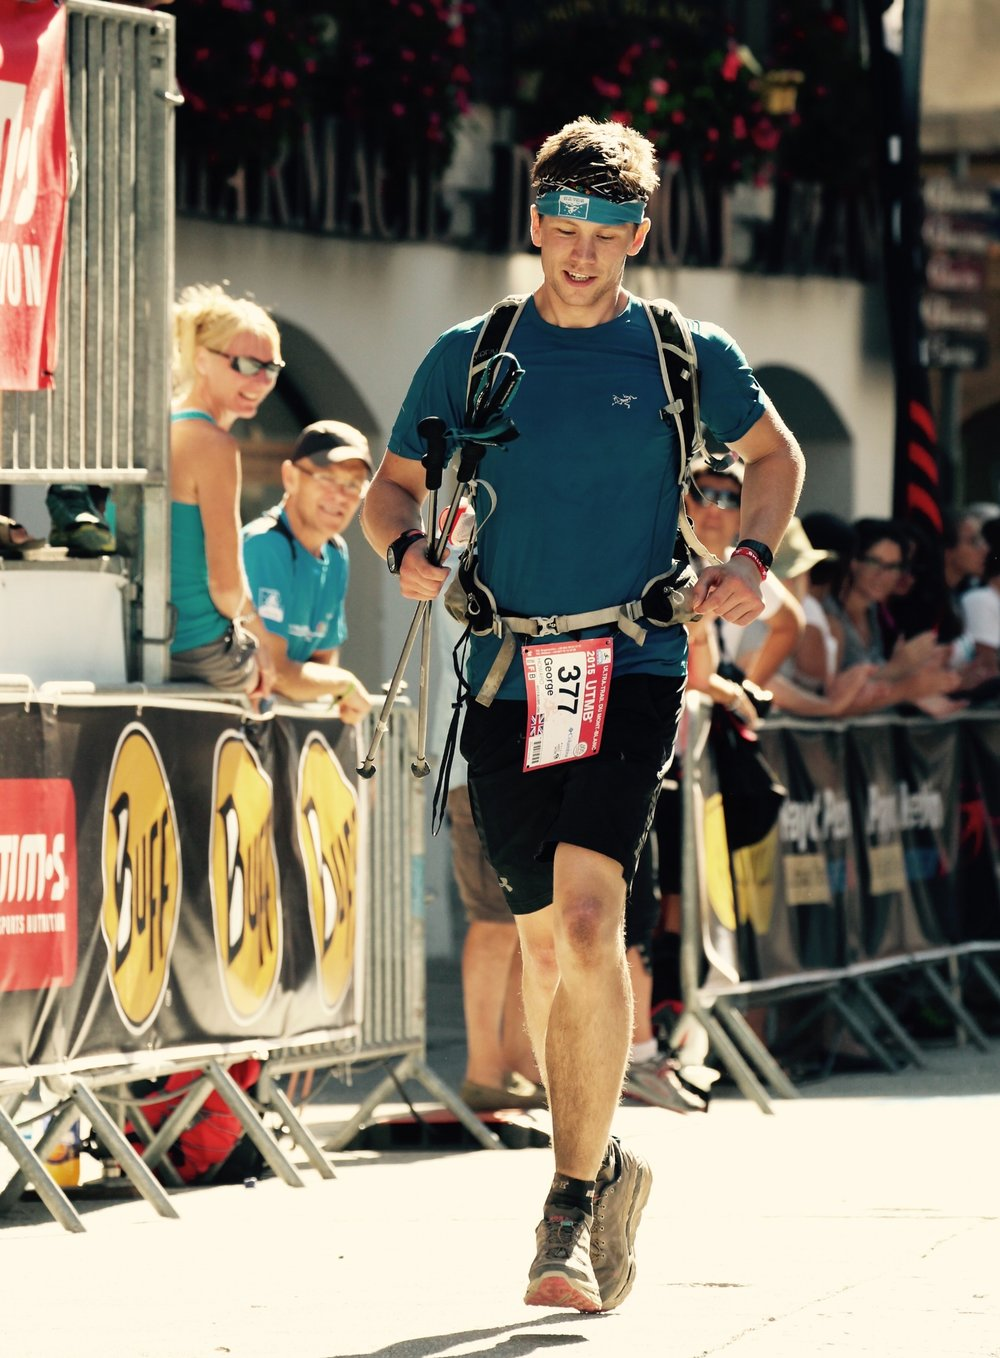 Chamonix at the end of the UTMB